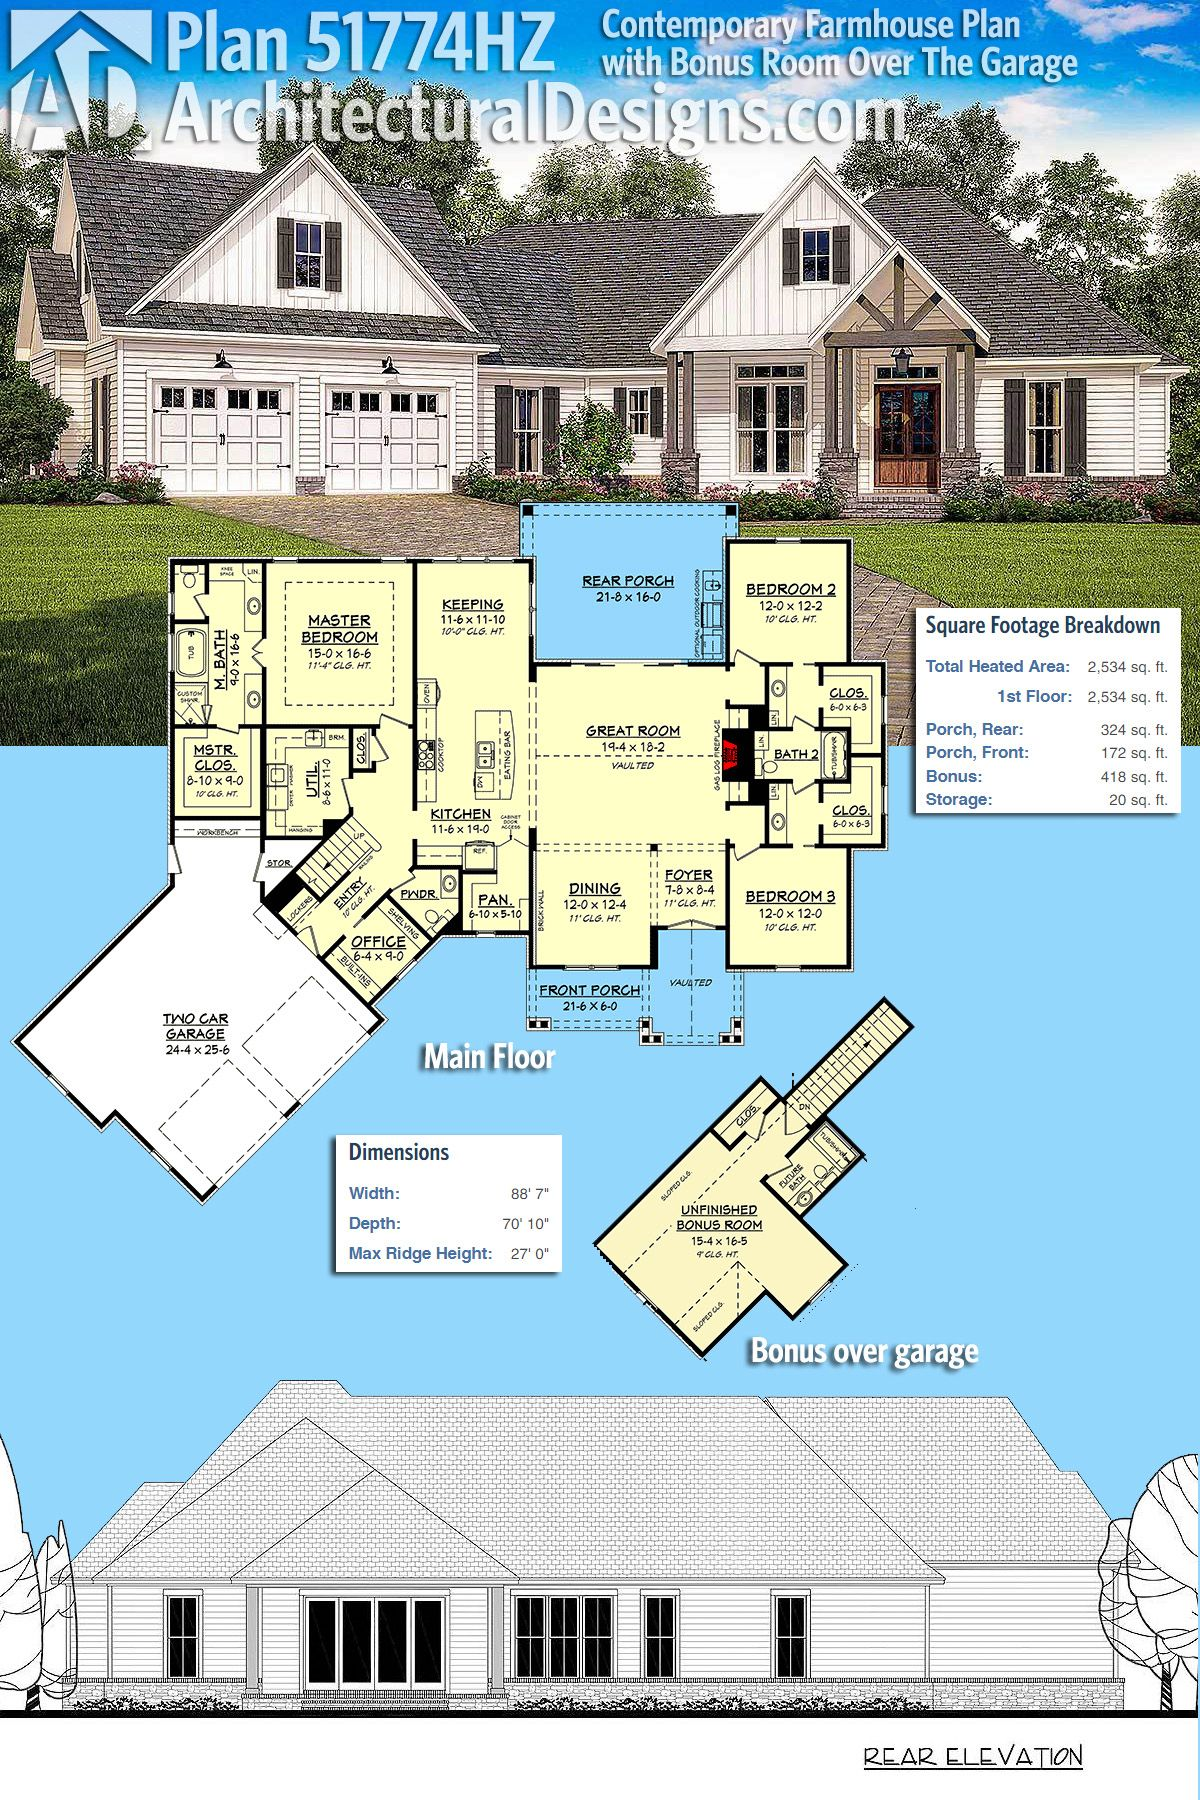 plan 51774hz contemporary farmhouse plan with bonus room over the